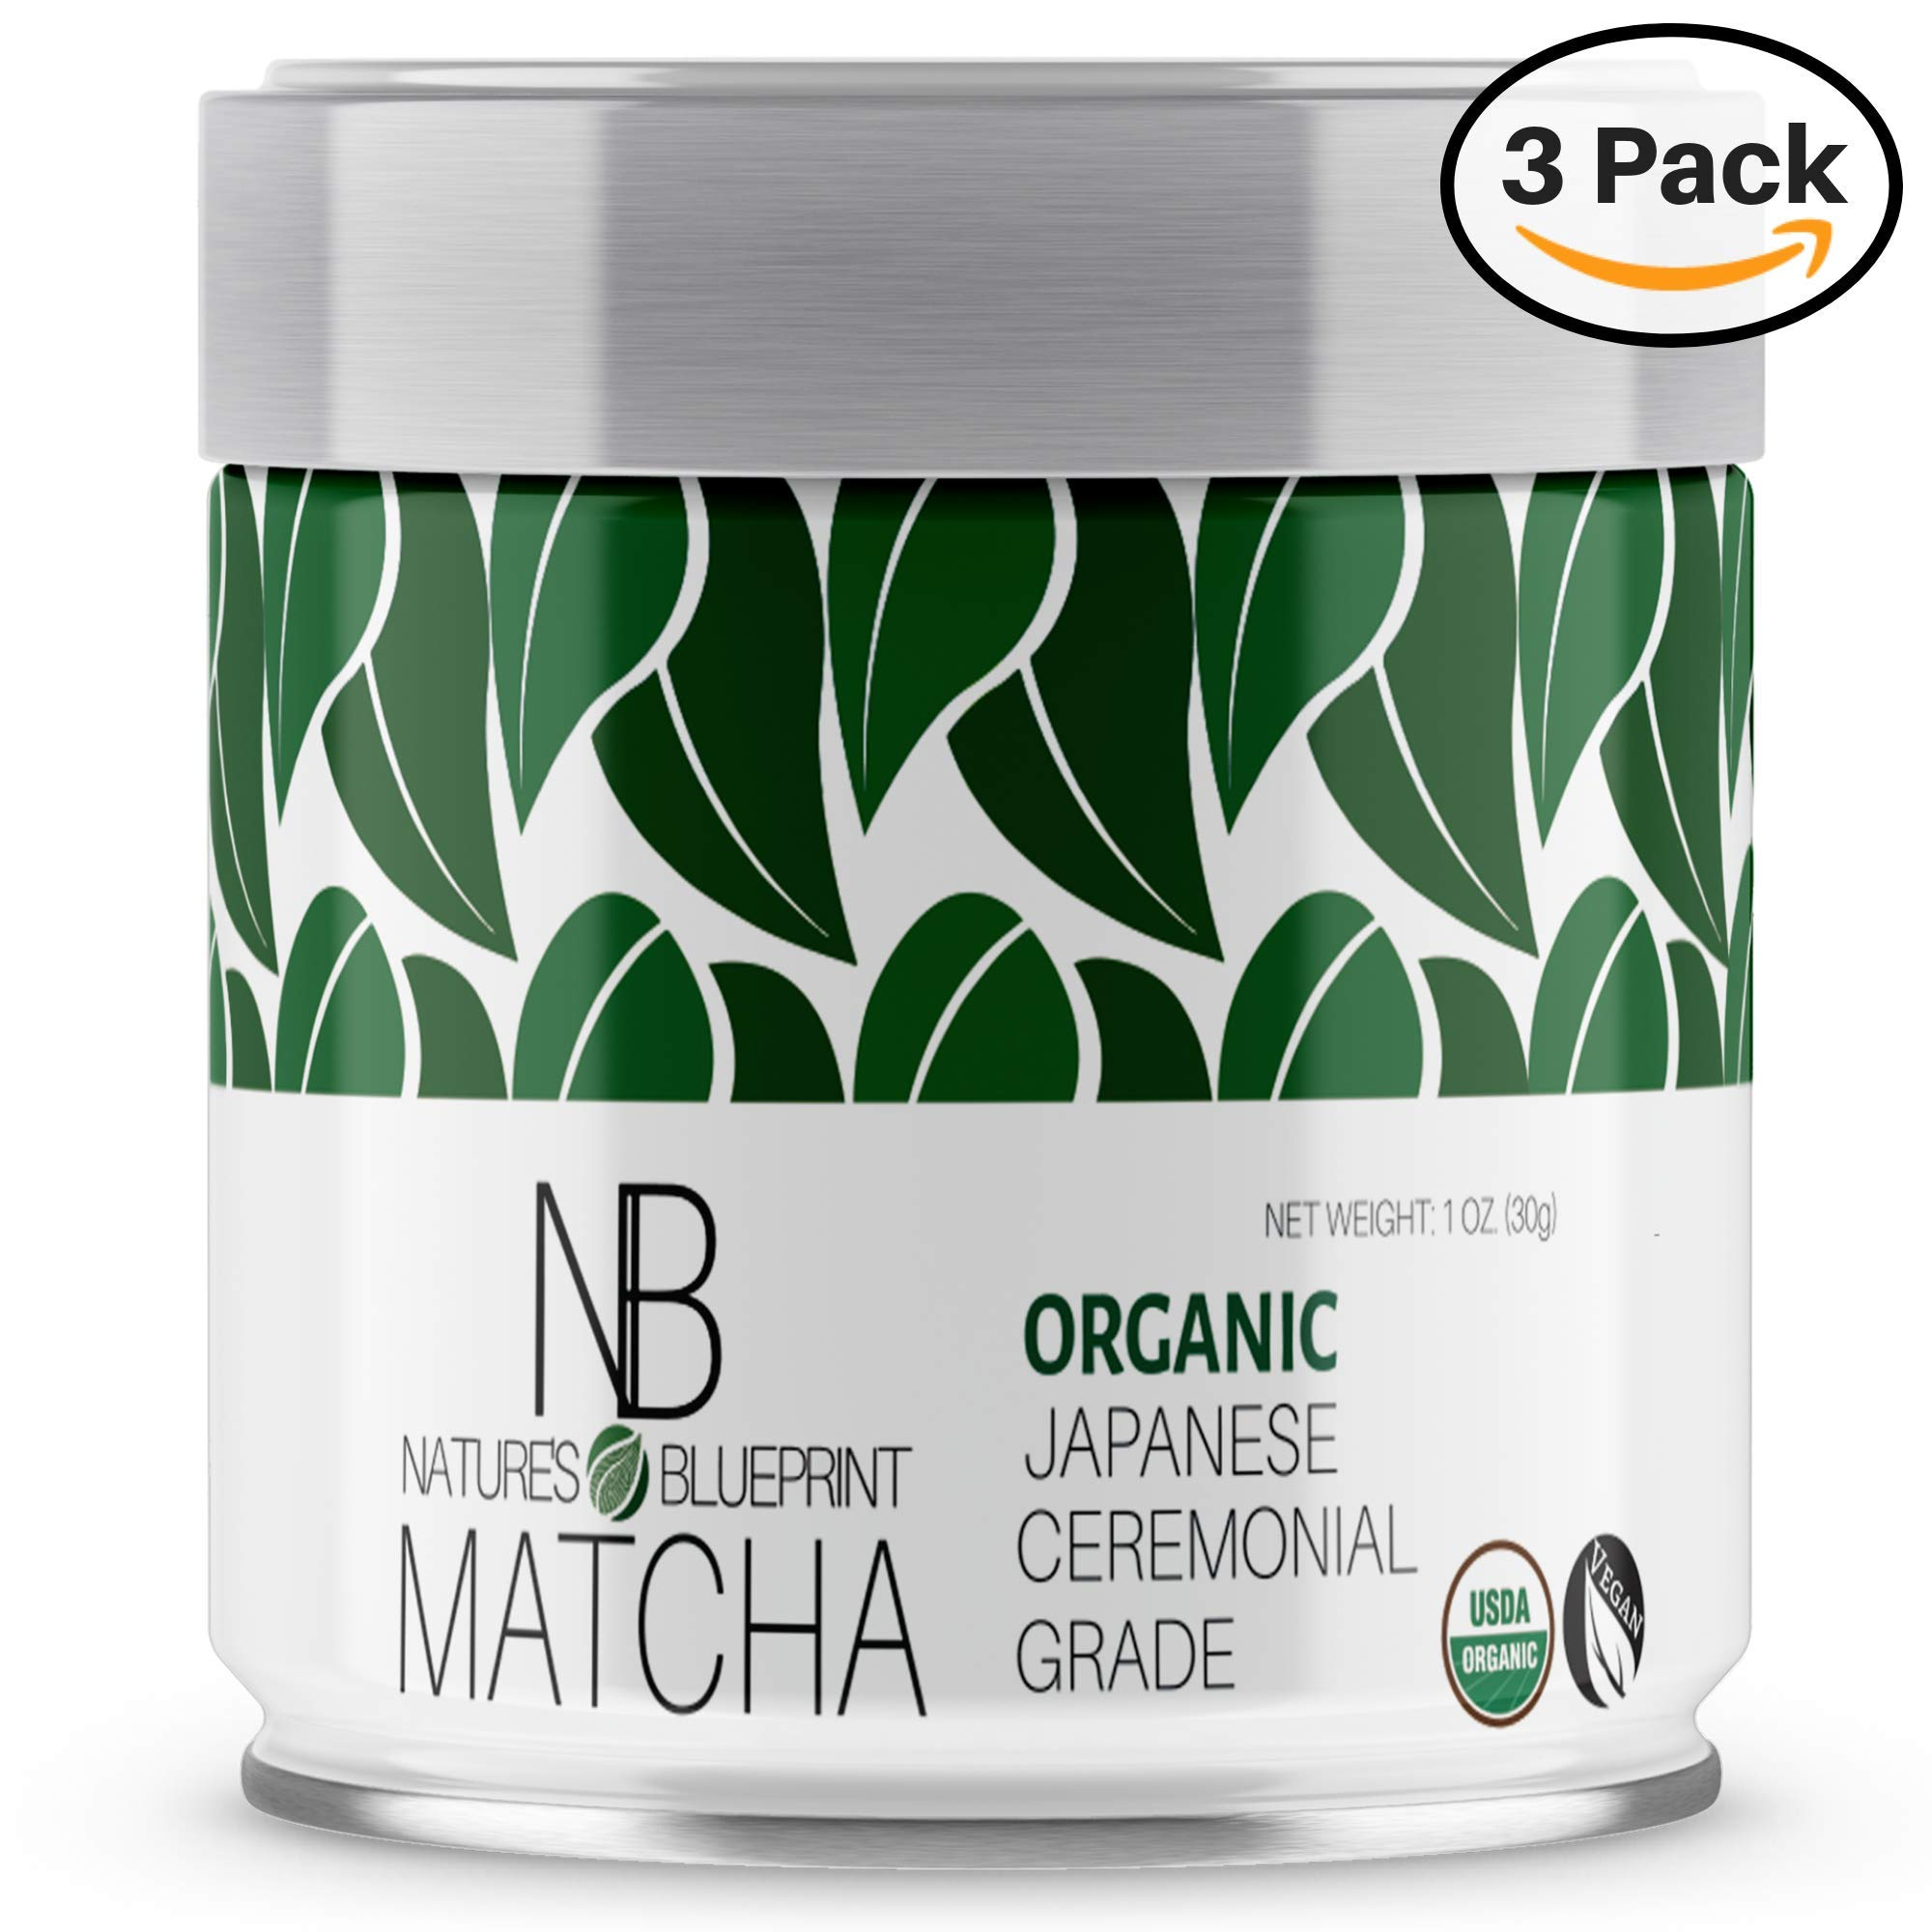 Matcha Green Tea Powder-3 Pk-Organic Japanese Ceremonial Grade Straight from Uji Kyoto, Premium Quality-3 oz BUNDLE contains Powerful Antioxidant Energy for NON-GMO Health. … by Nature's Blueprint (Image #1)